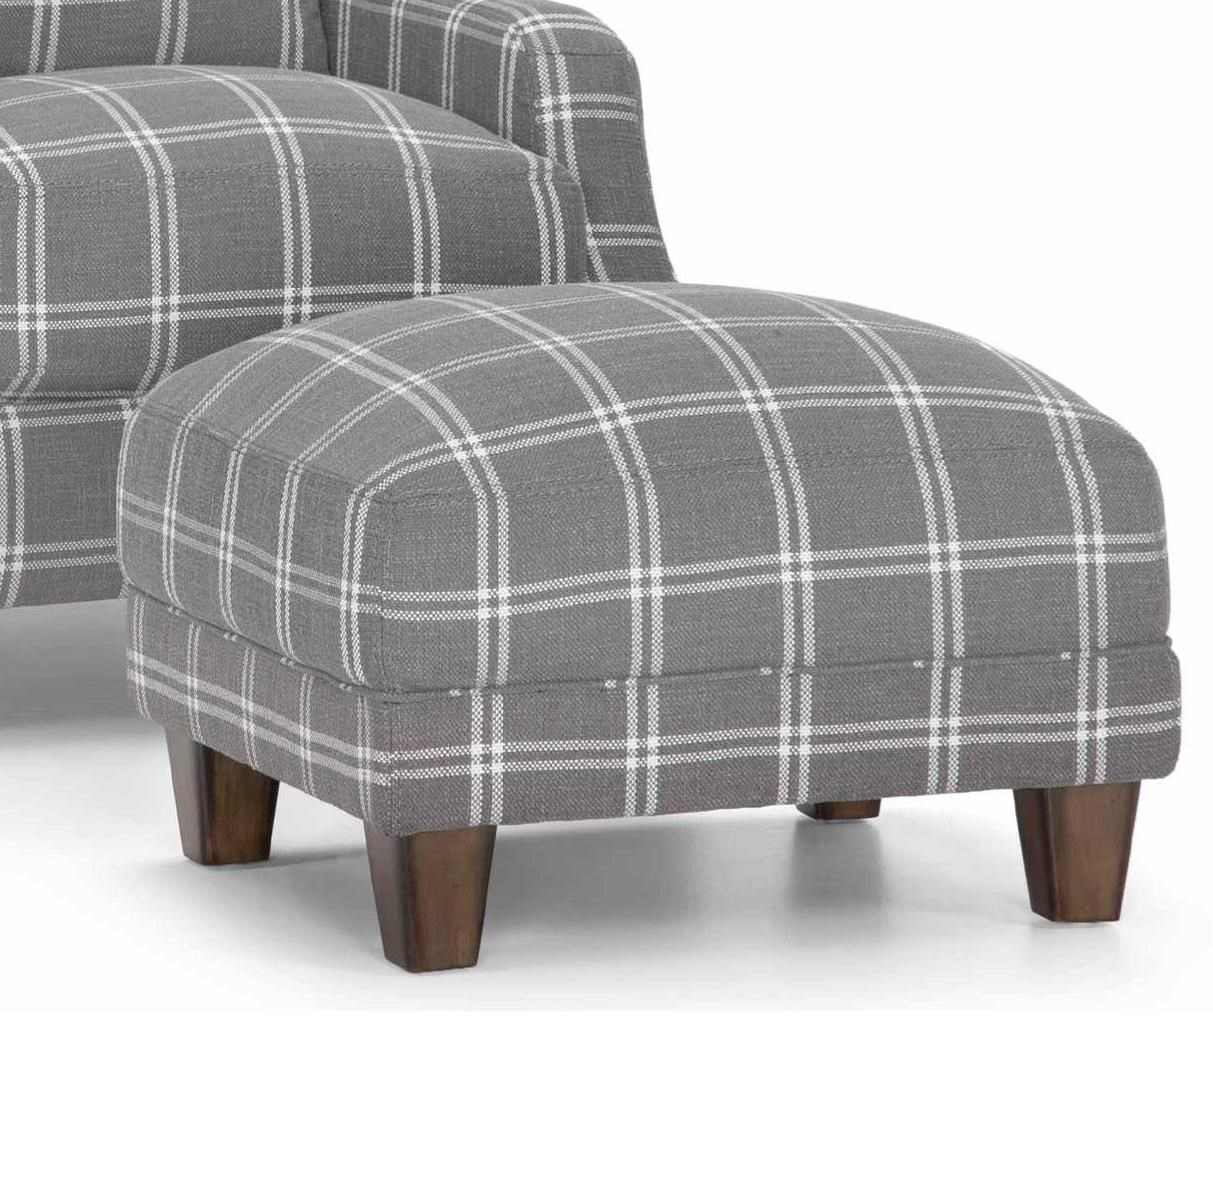 863 Accent Ottoman by Franklin at Turk Furniture